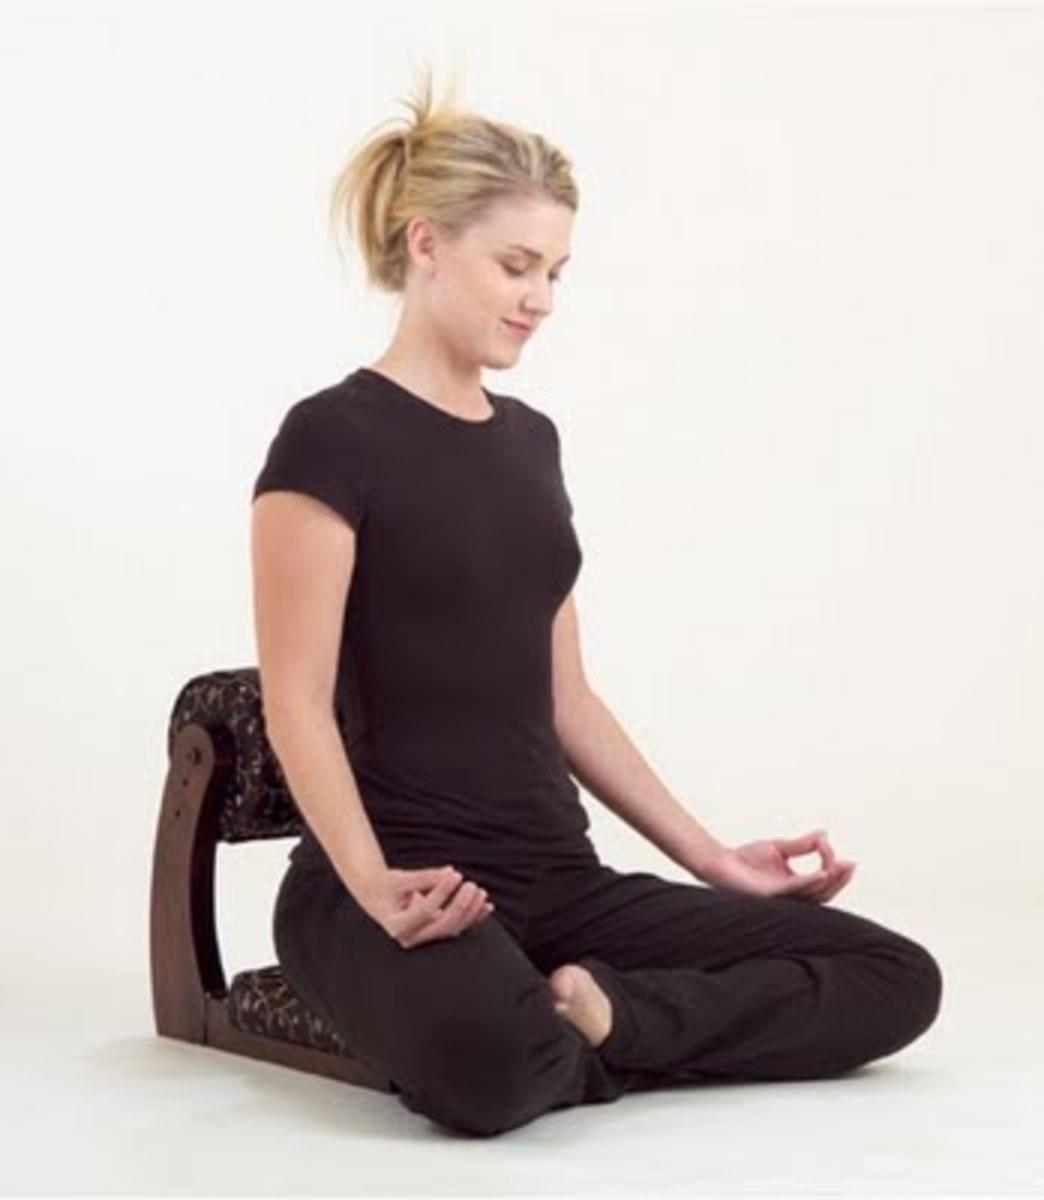 The Wandering Monk Meditation Chair from Zen By Design